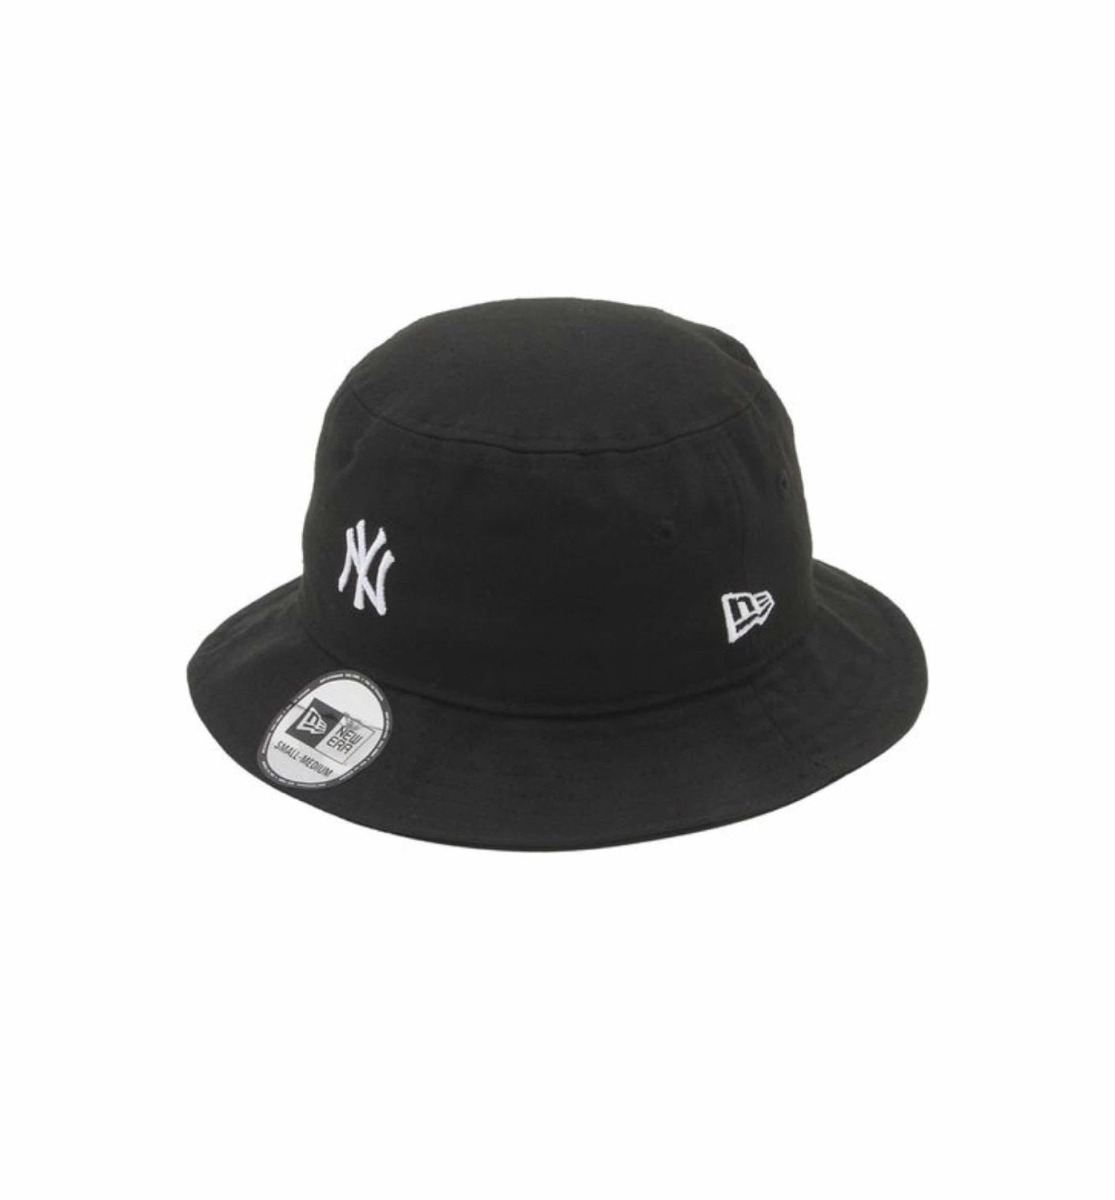 64bbbe9637eef bucket new era new york yankees original. Carregando zoom.